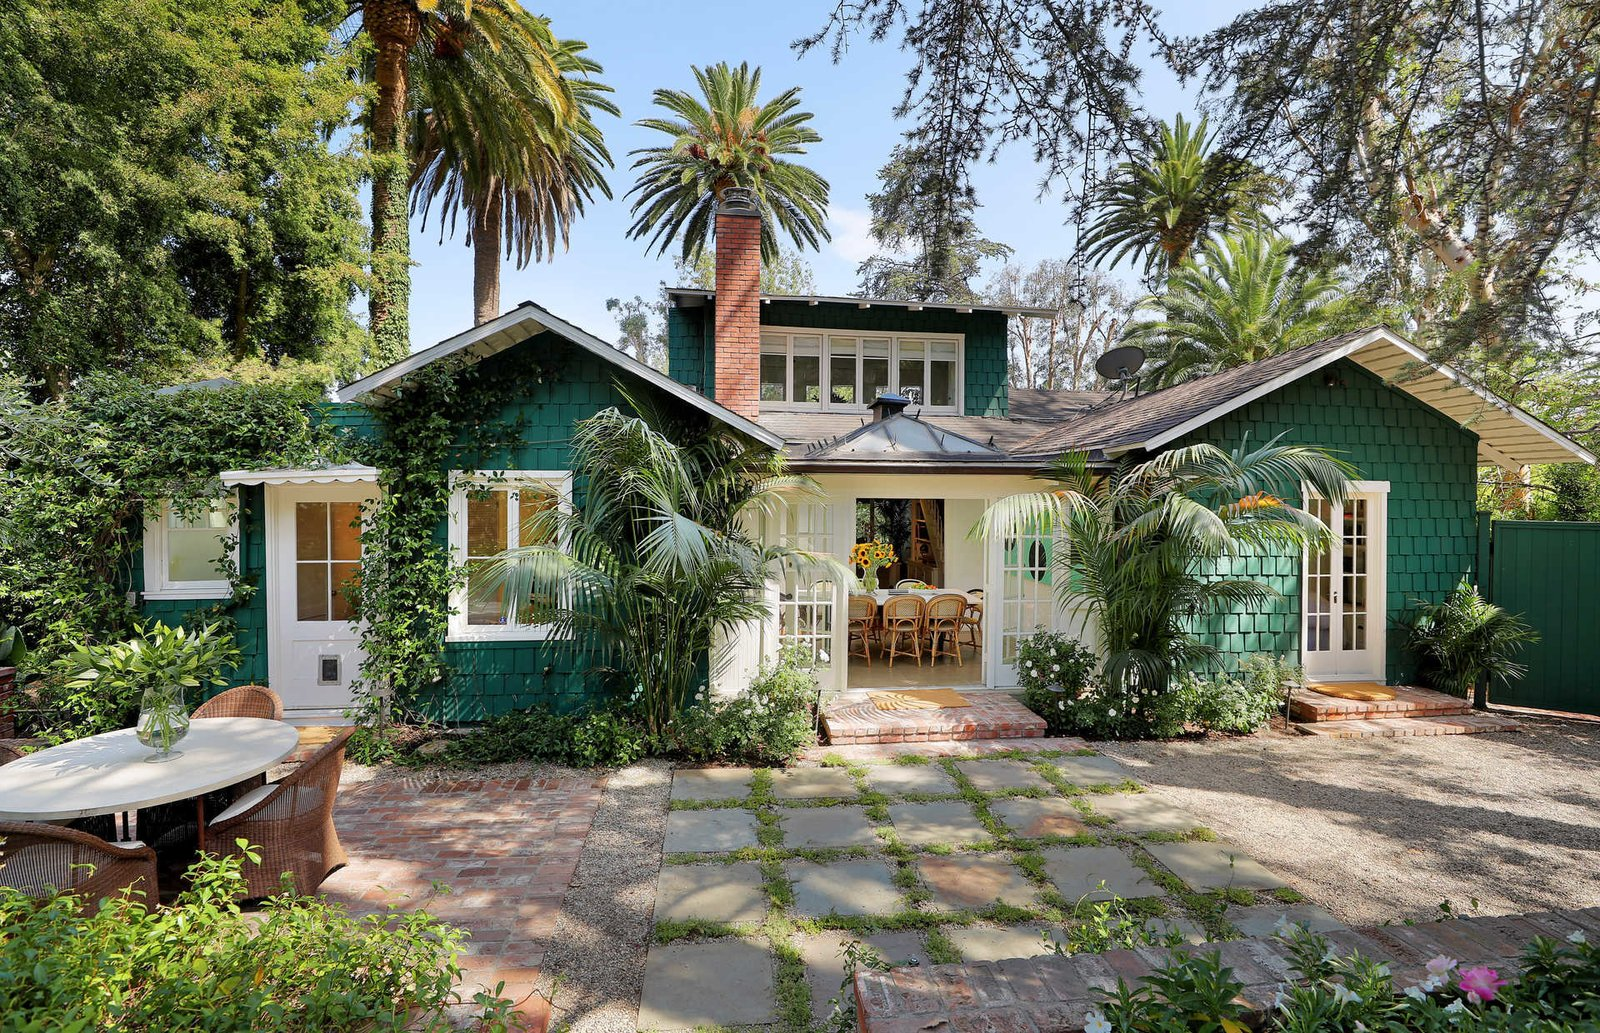 the-110-year-old-california-craftsman-bungalow-is-at-once-rich-in-history-and-entirely-suited-to-todays-discerning-tastes.jpg